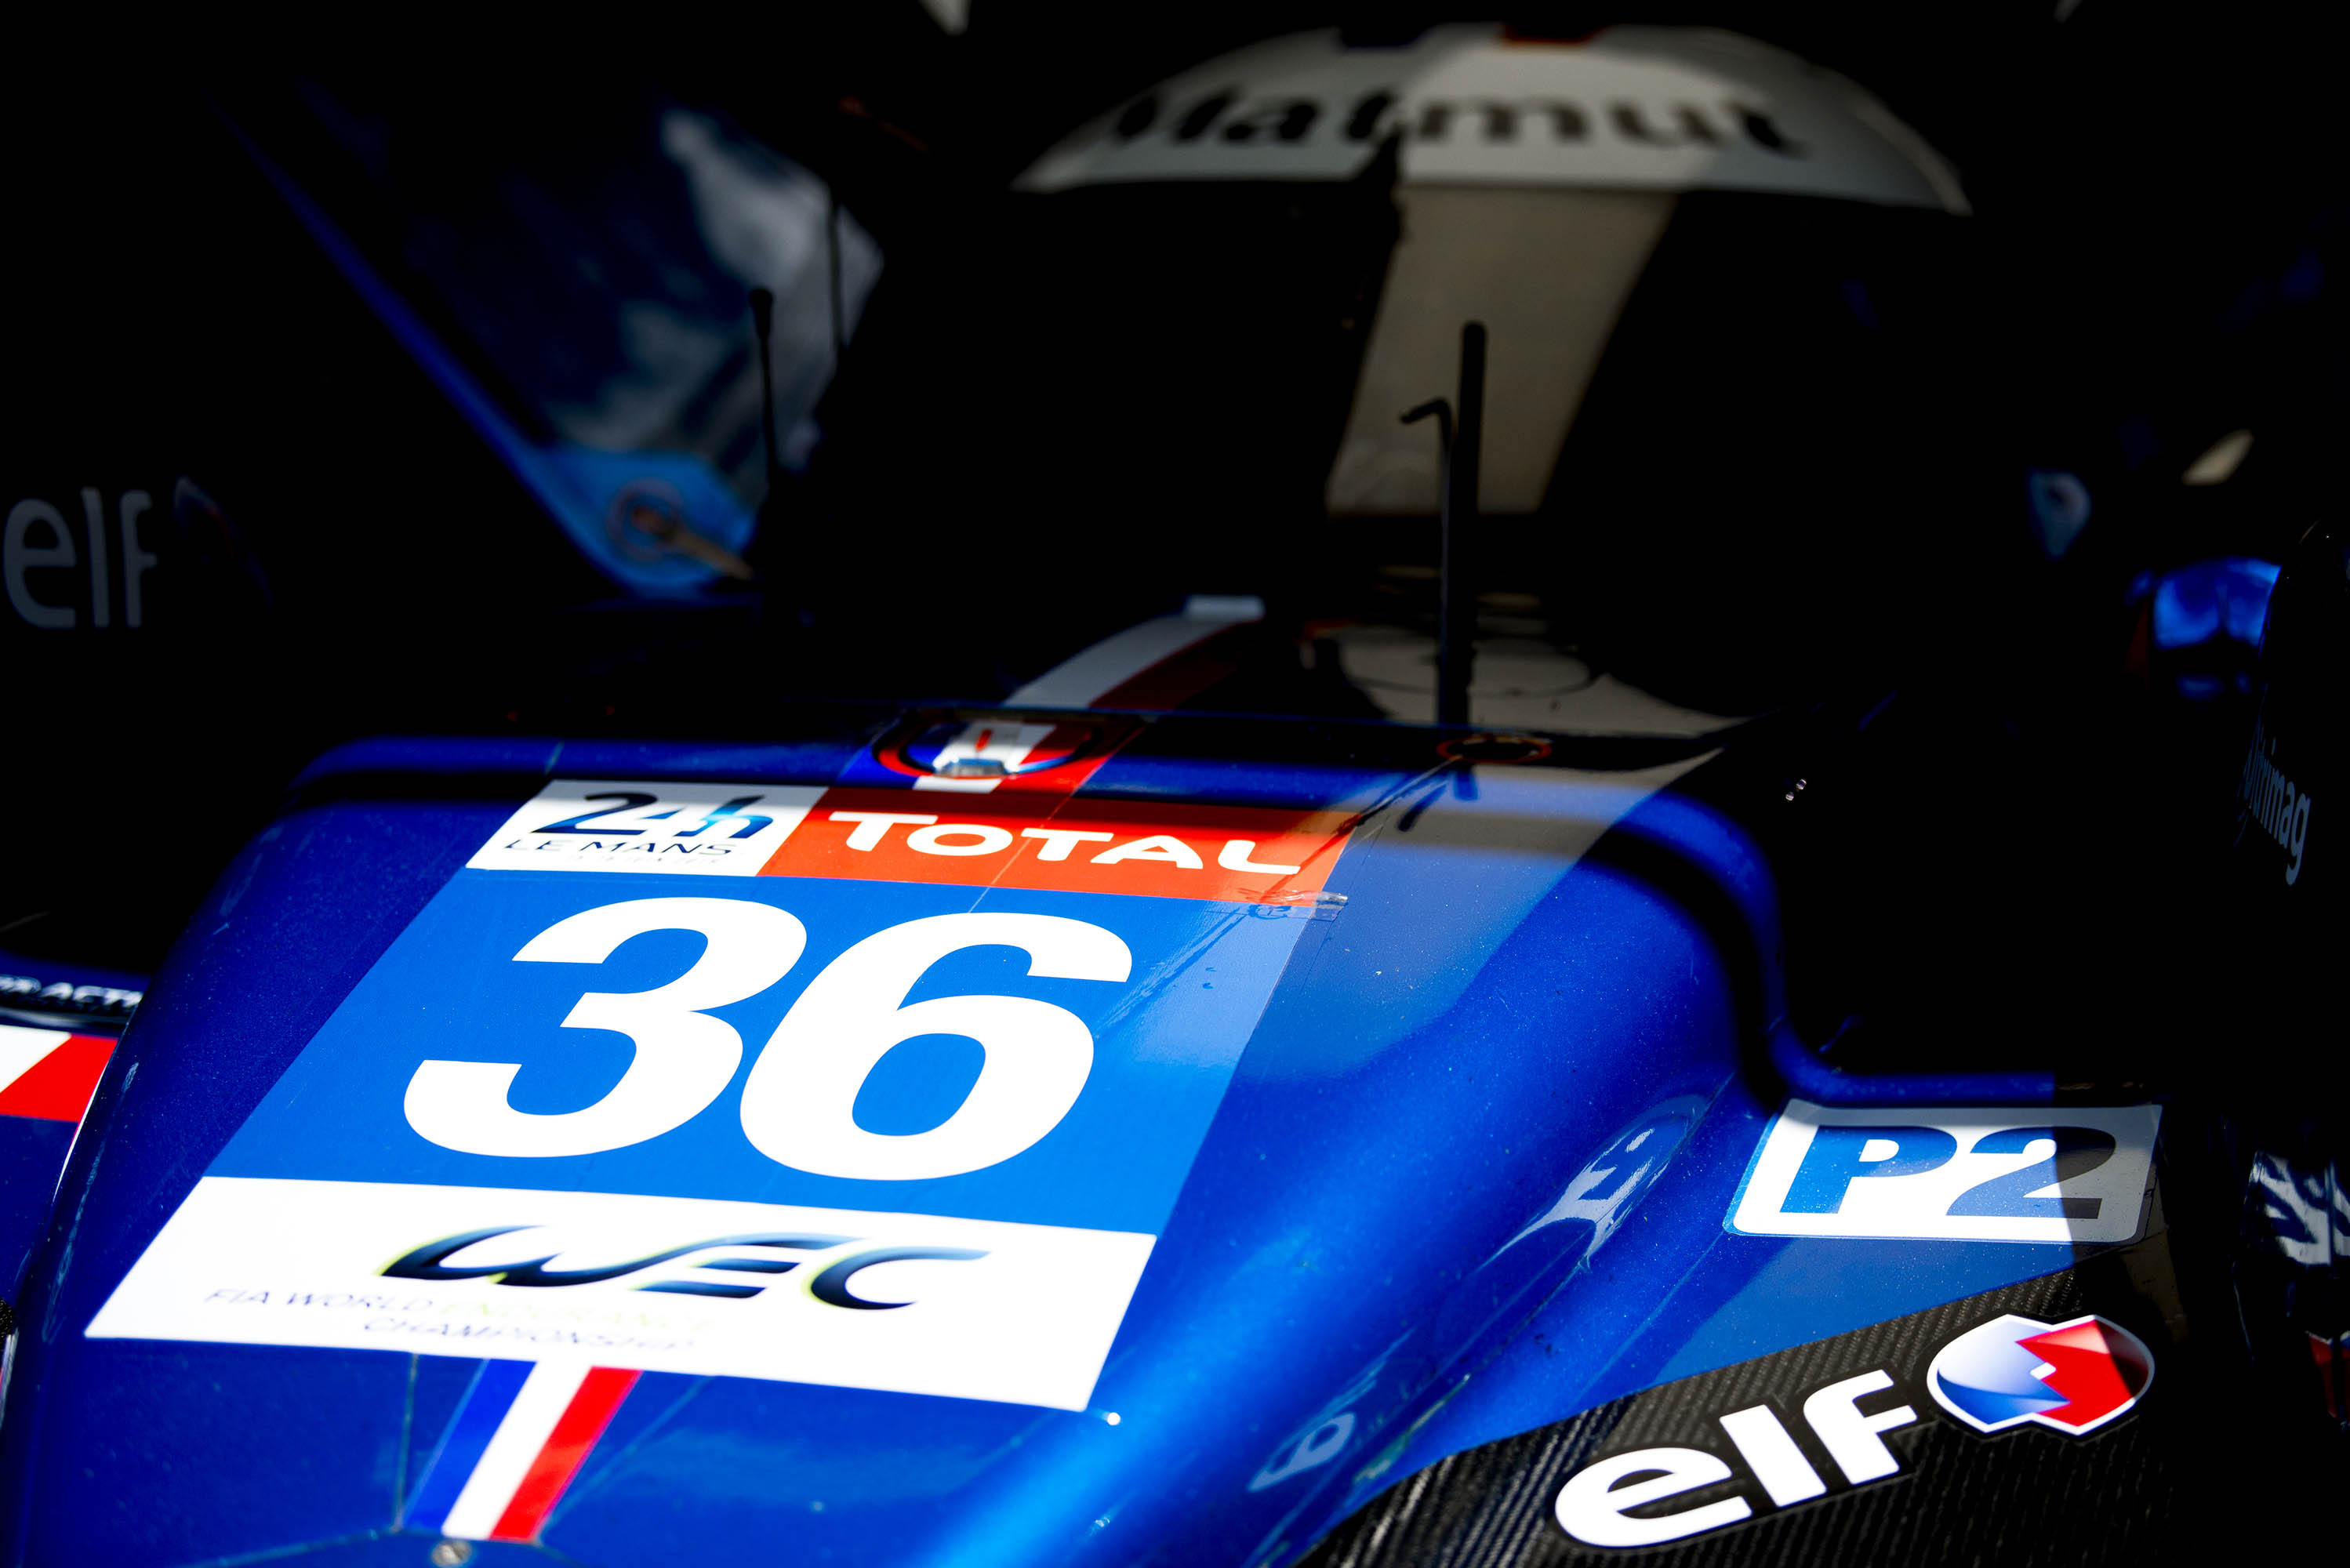 MRS_Alpine_LeMans2019_02008